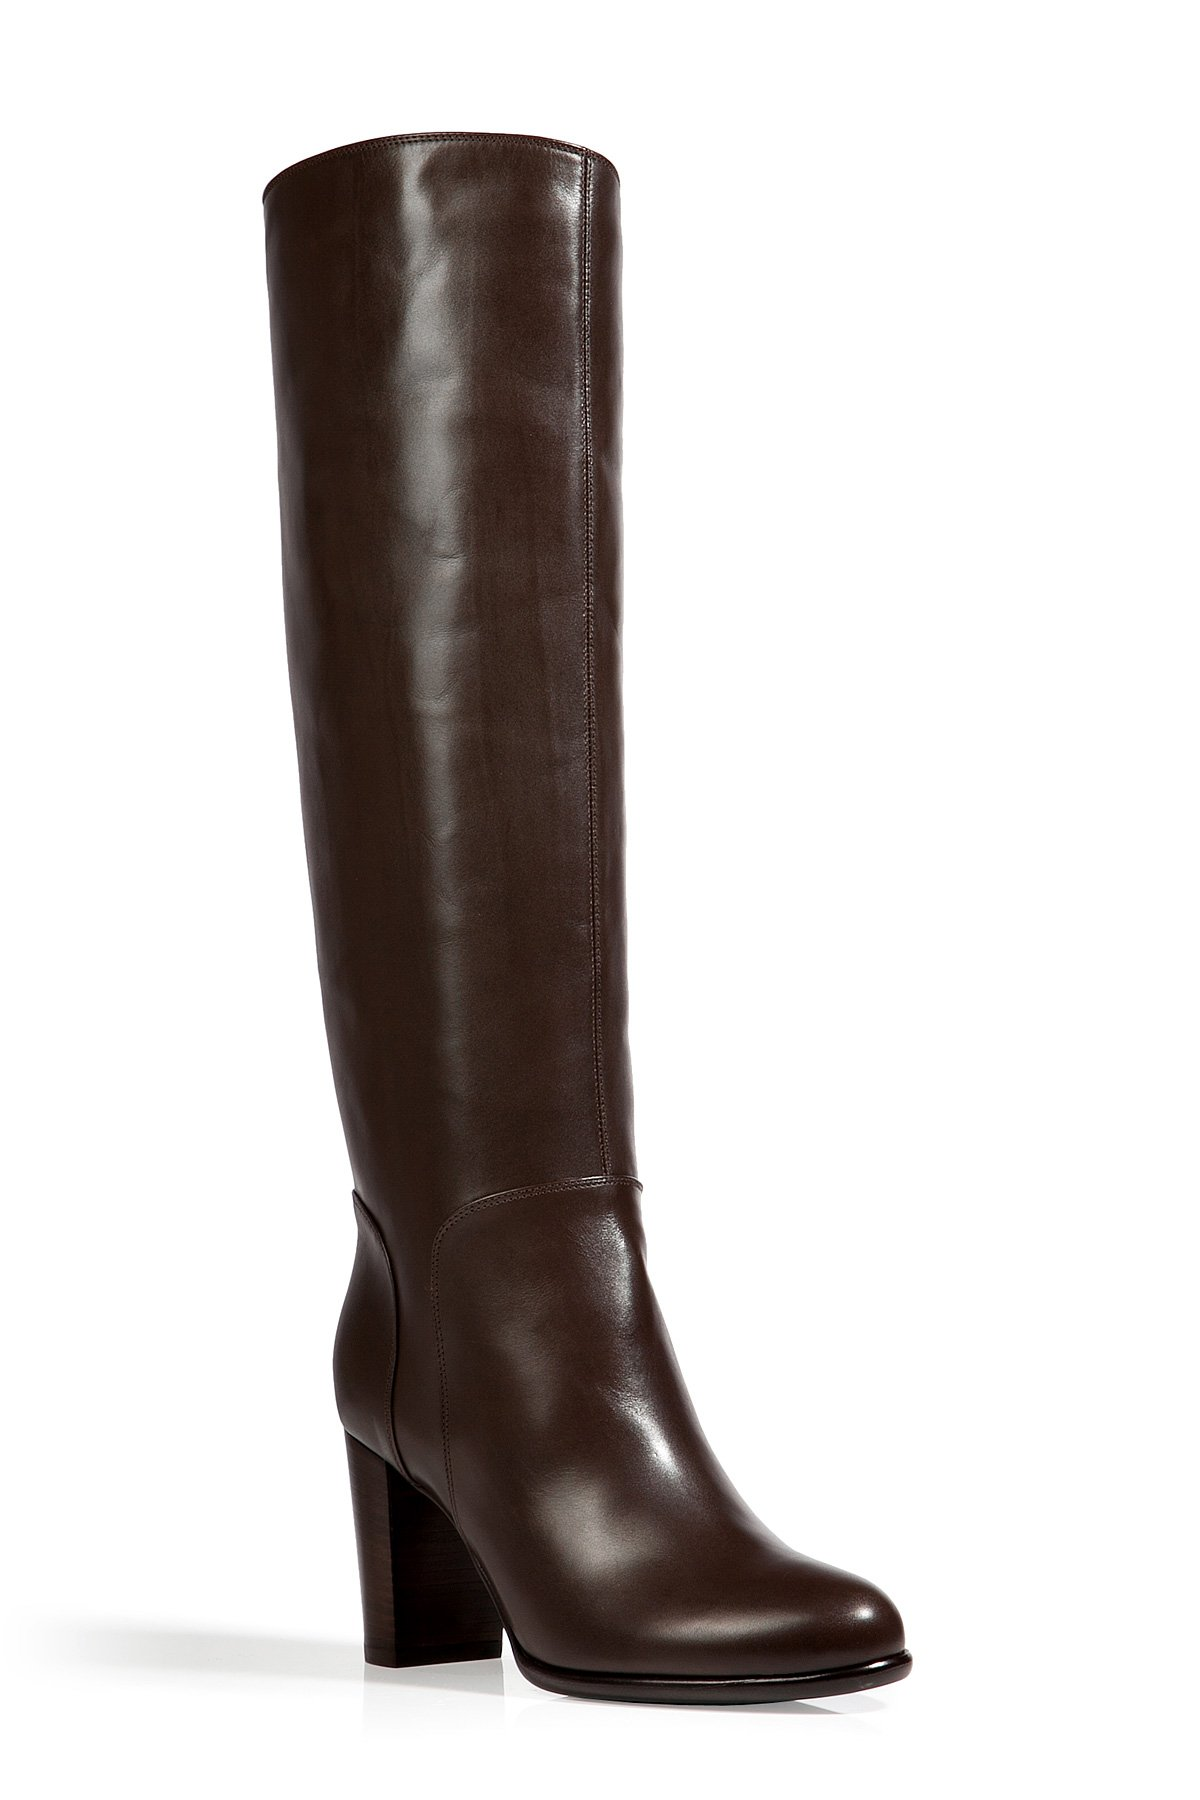 Sergio Rossi Leather Tall Boots In Ebony In Brown Lyst